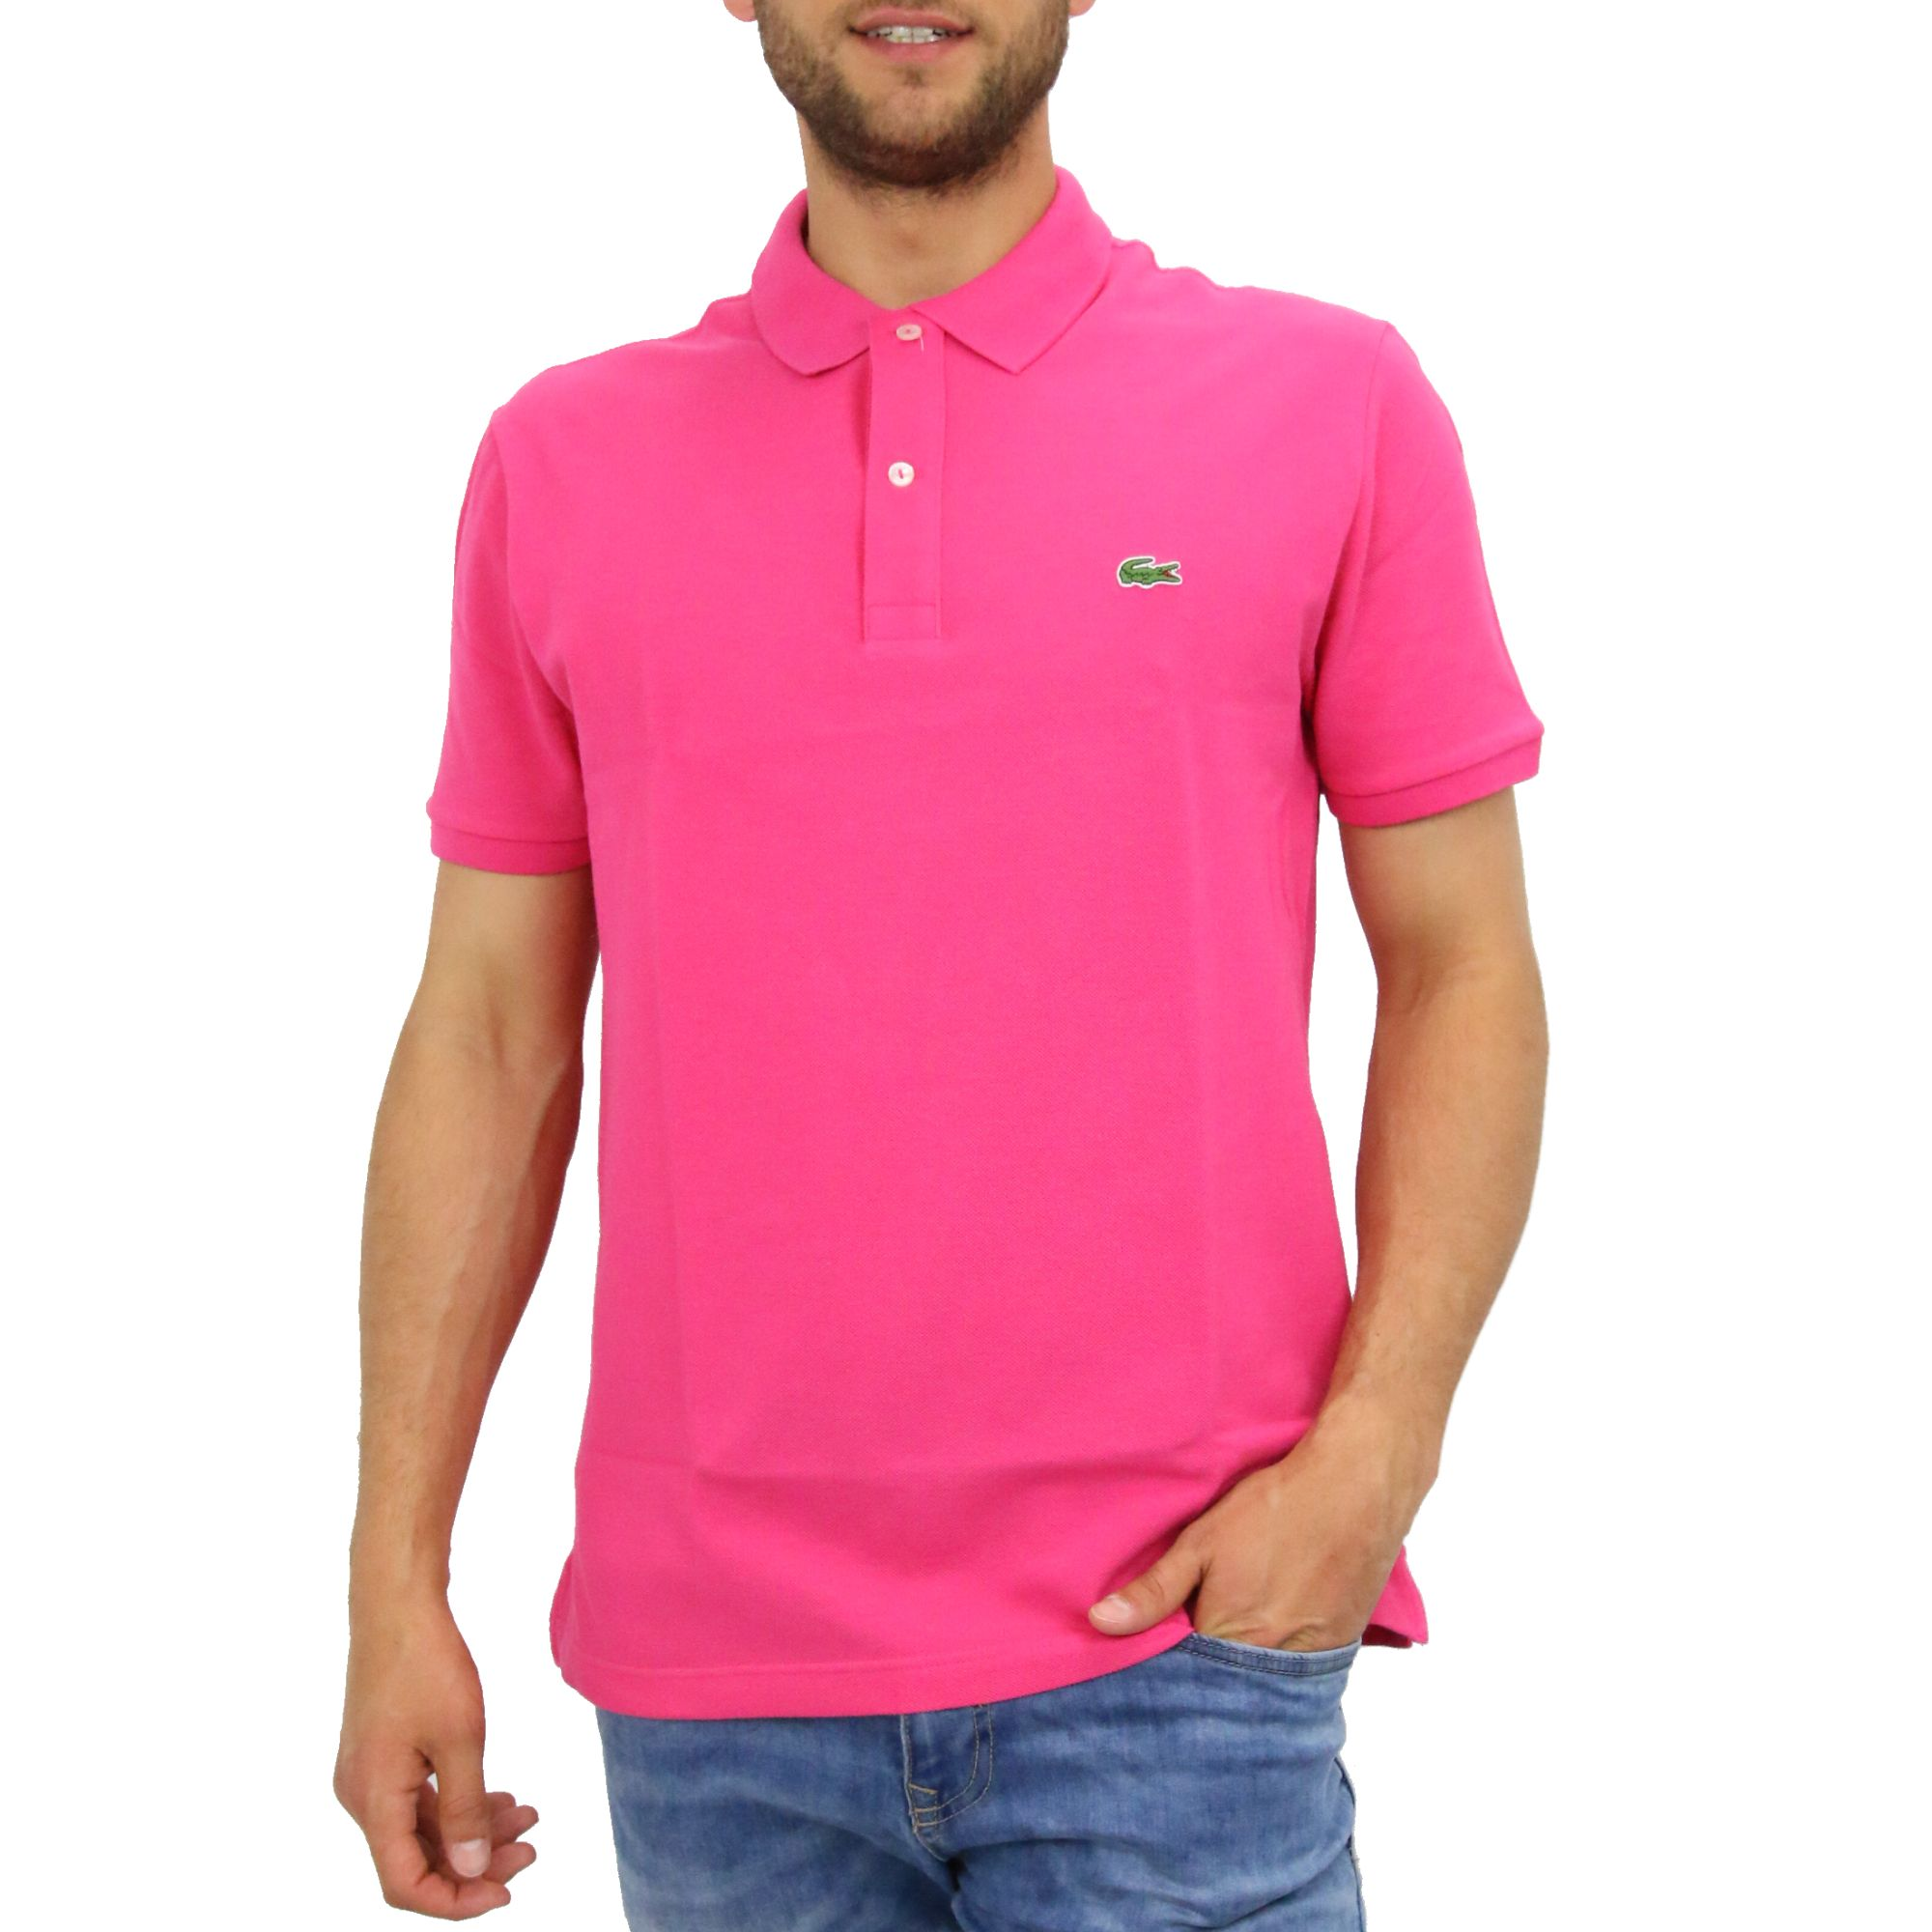 Lacoste slim fit polo shirt men 39 s ph4012 ebay for Mens slim polo shirts